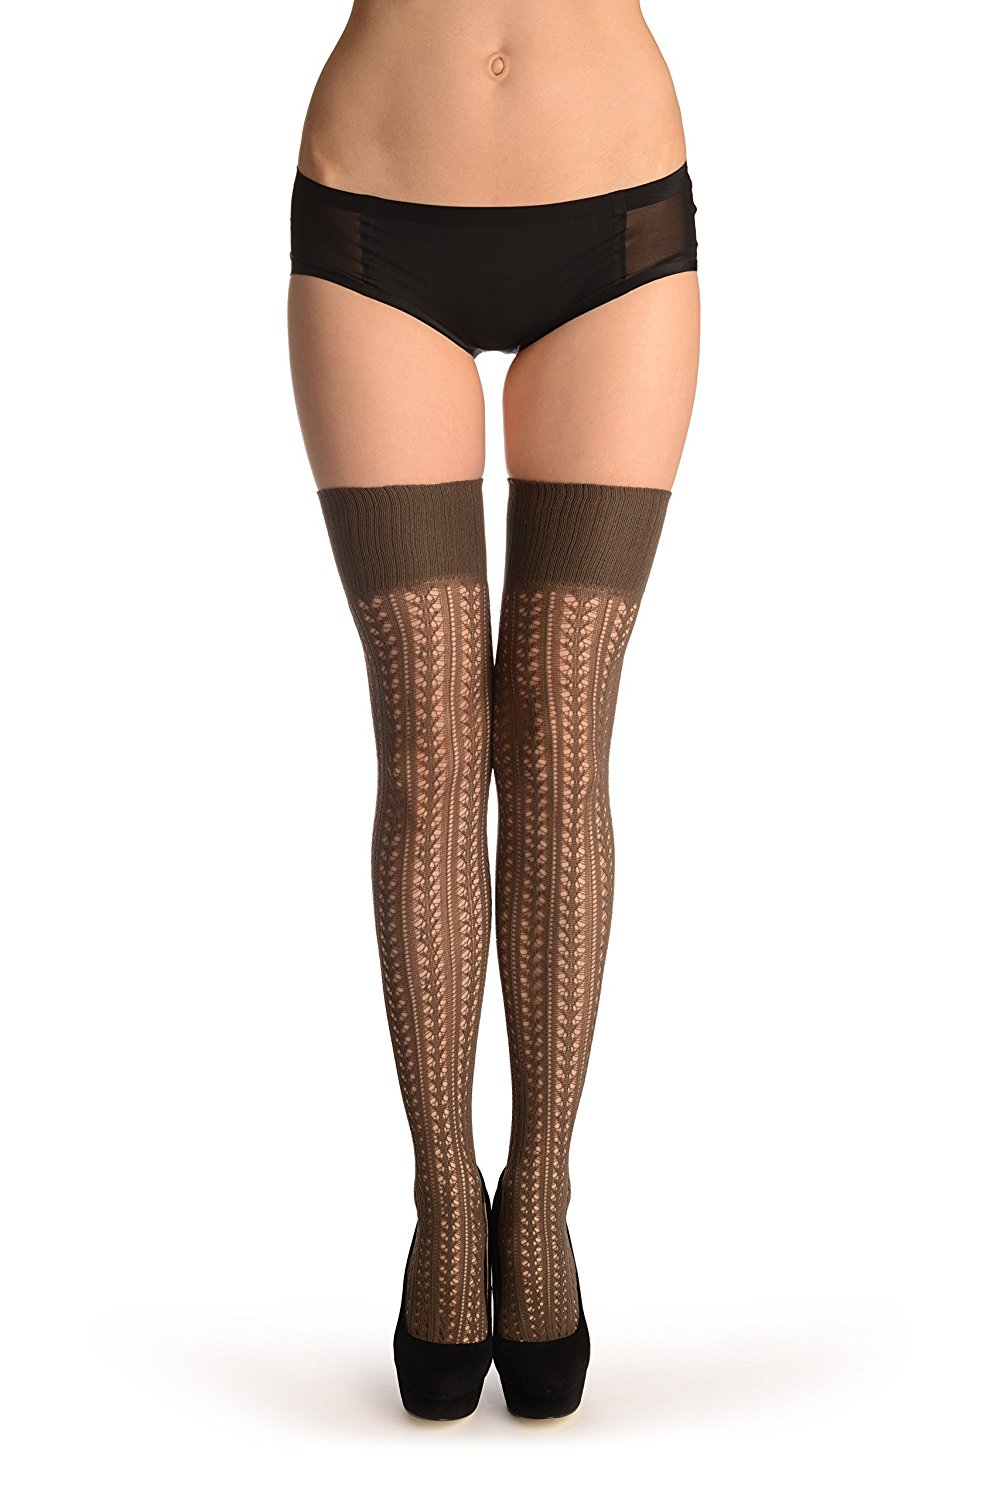 0dccec11a Get Quotations · Grey Burlesque Stripes Crochet Lace With Elasticated Top -  Stay - Up (Stockings)